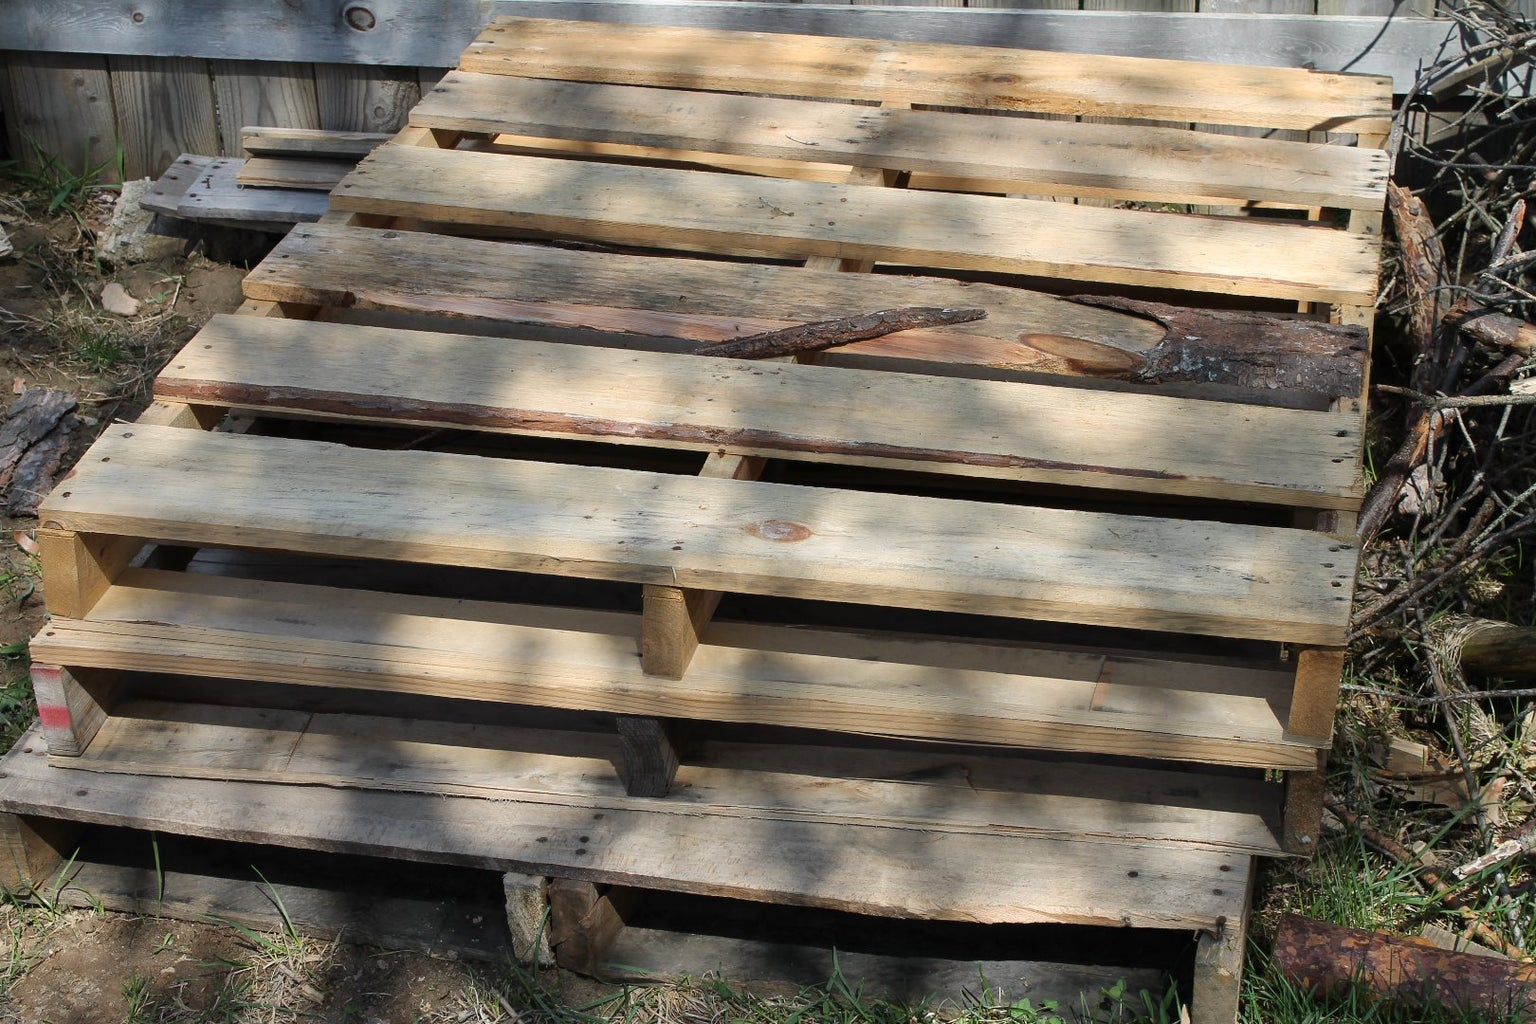 Finding Pallets